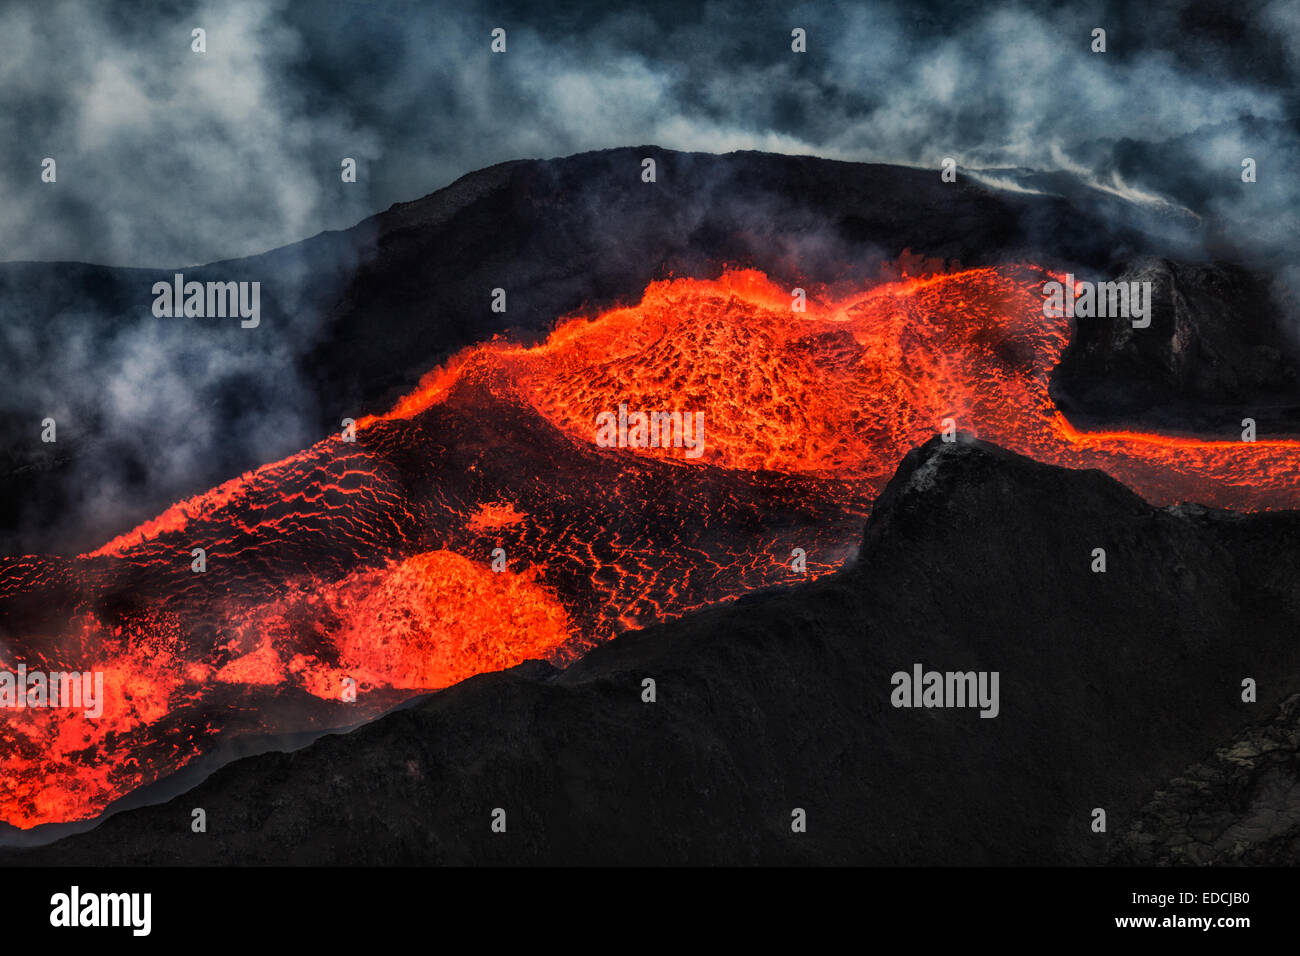 Aerial view of lava and plumes, Holuhraun Fissure Eruption, Bardarbunga Volcano, Iceland - Stock Image